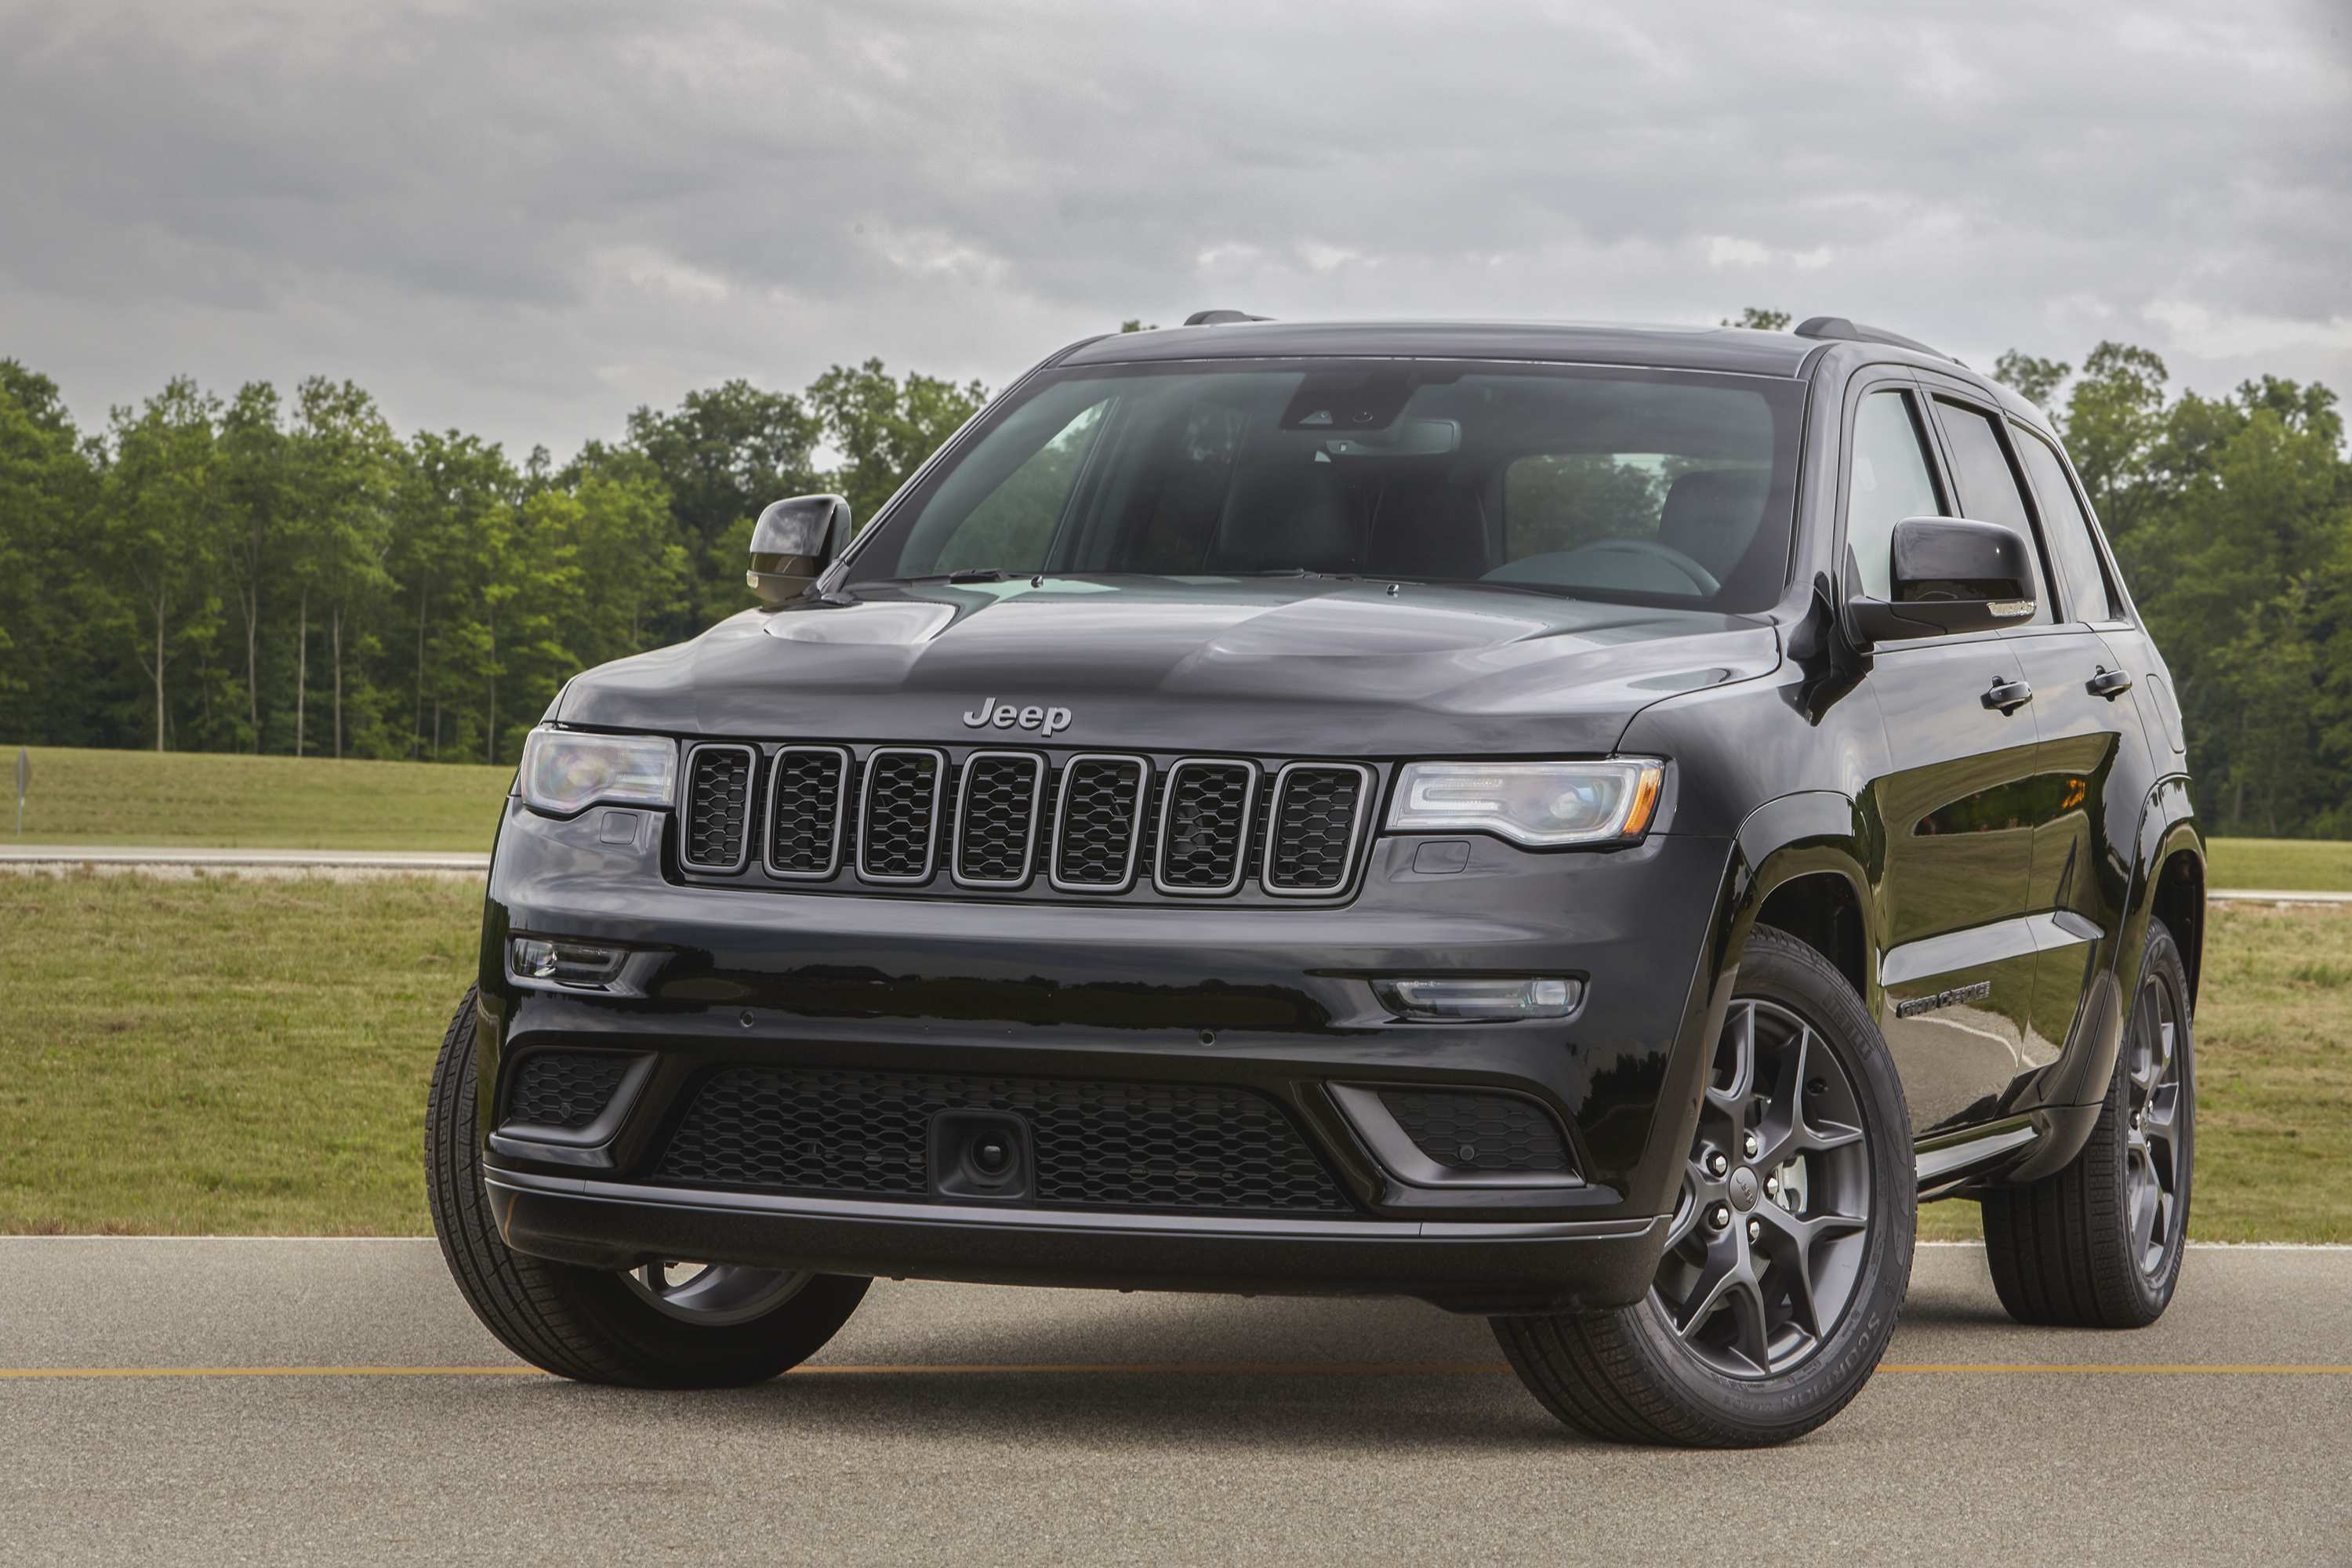 83 A 2019 The Jeep Grand Wagoneer Price And Review